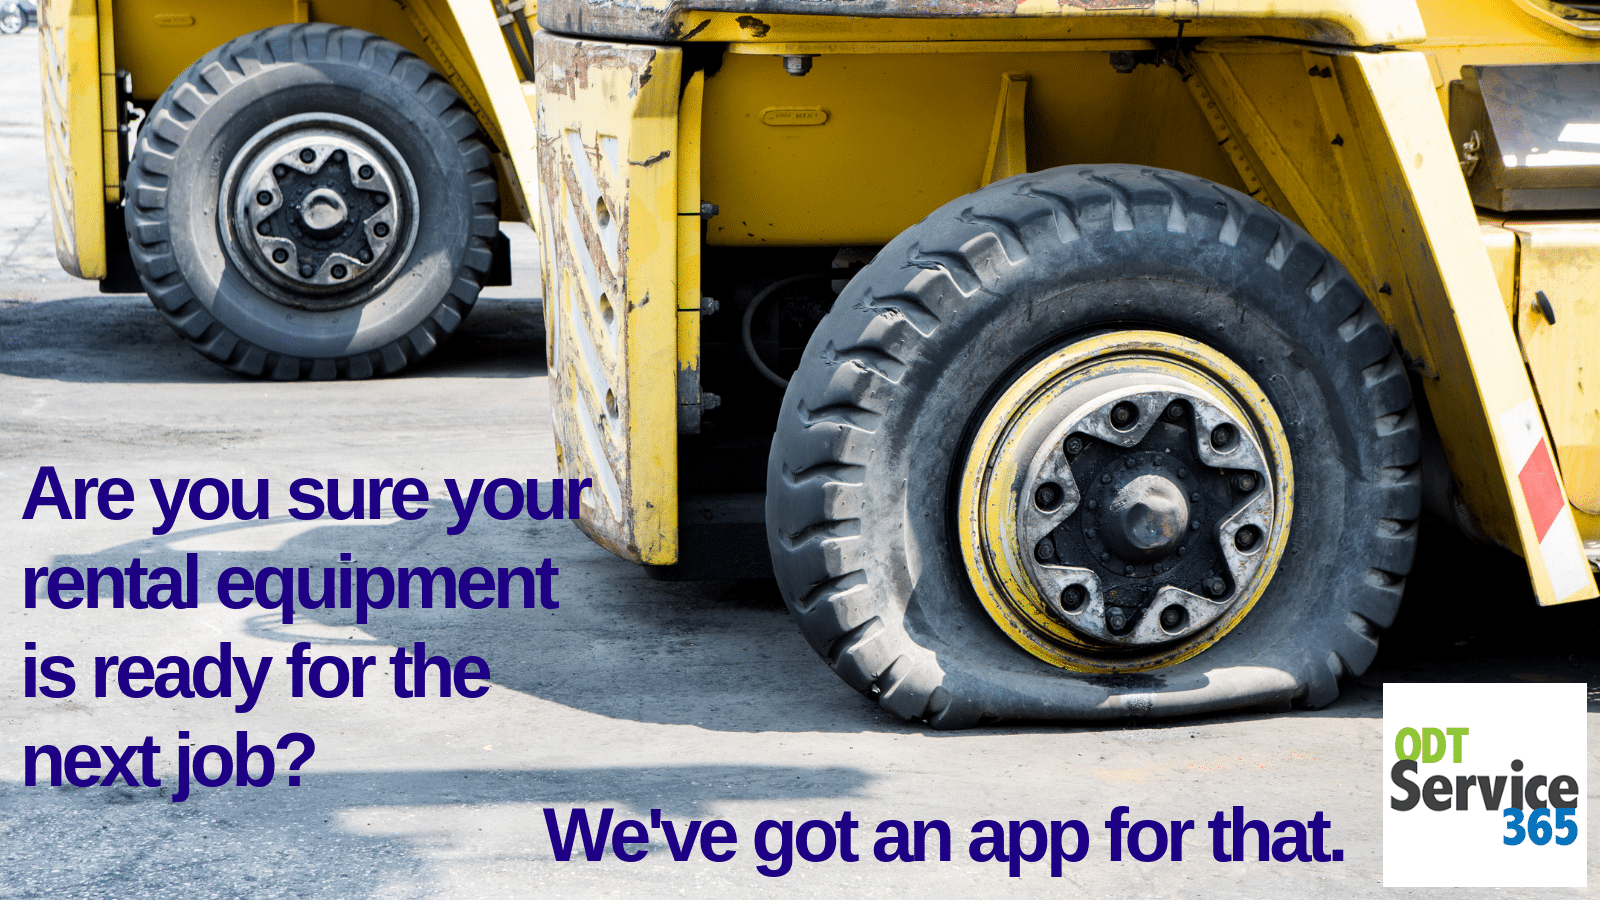 Are you sure your rental equipment is ready for the next job? We've got an app for that.